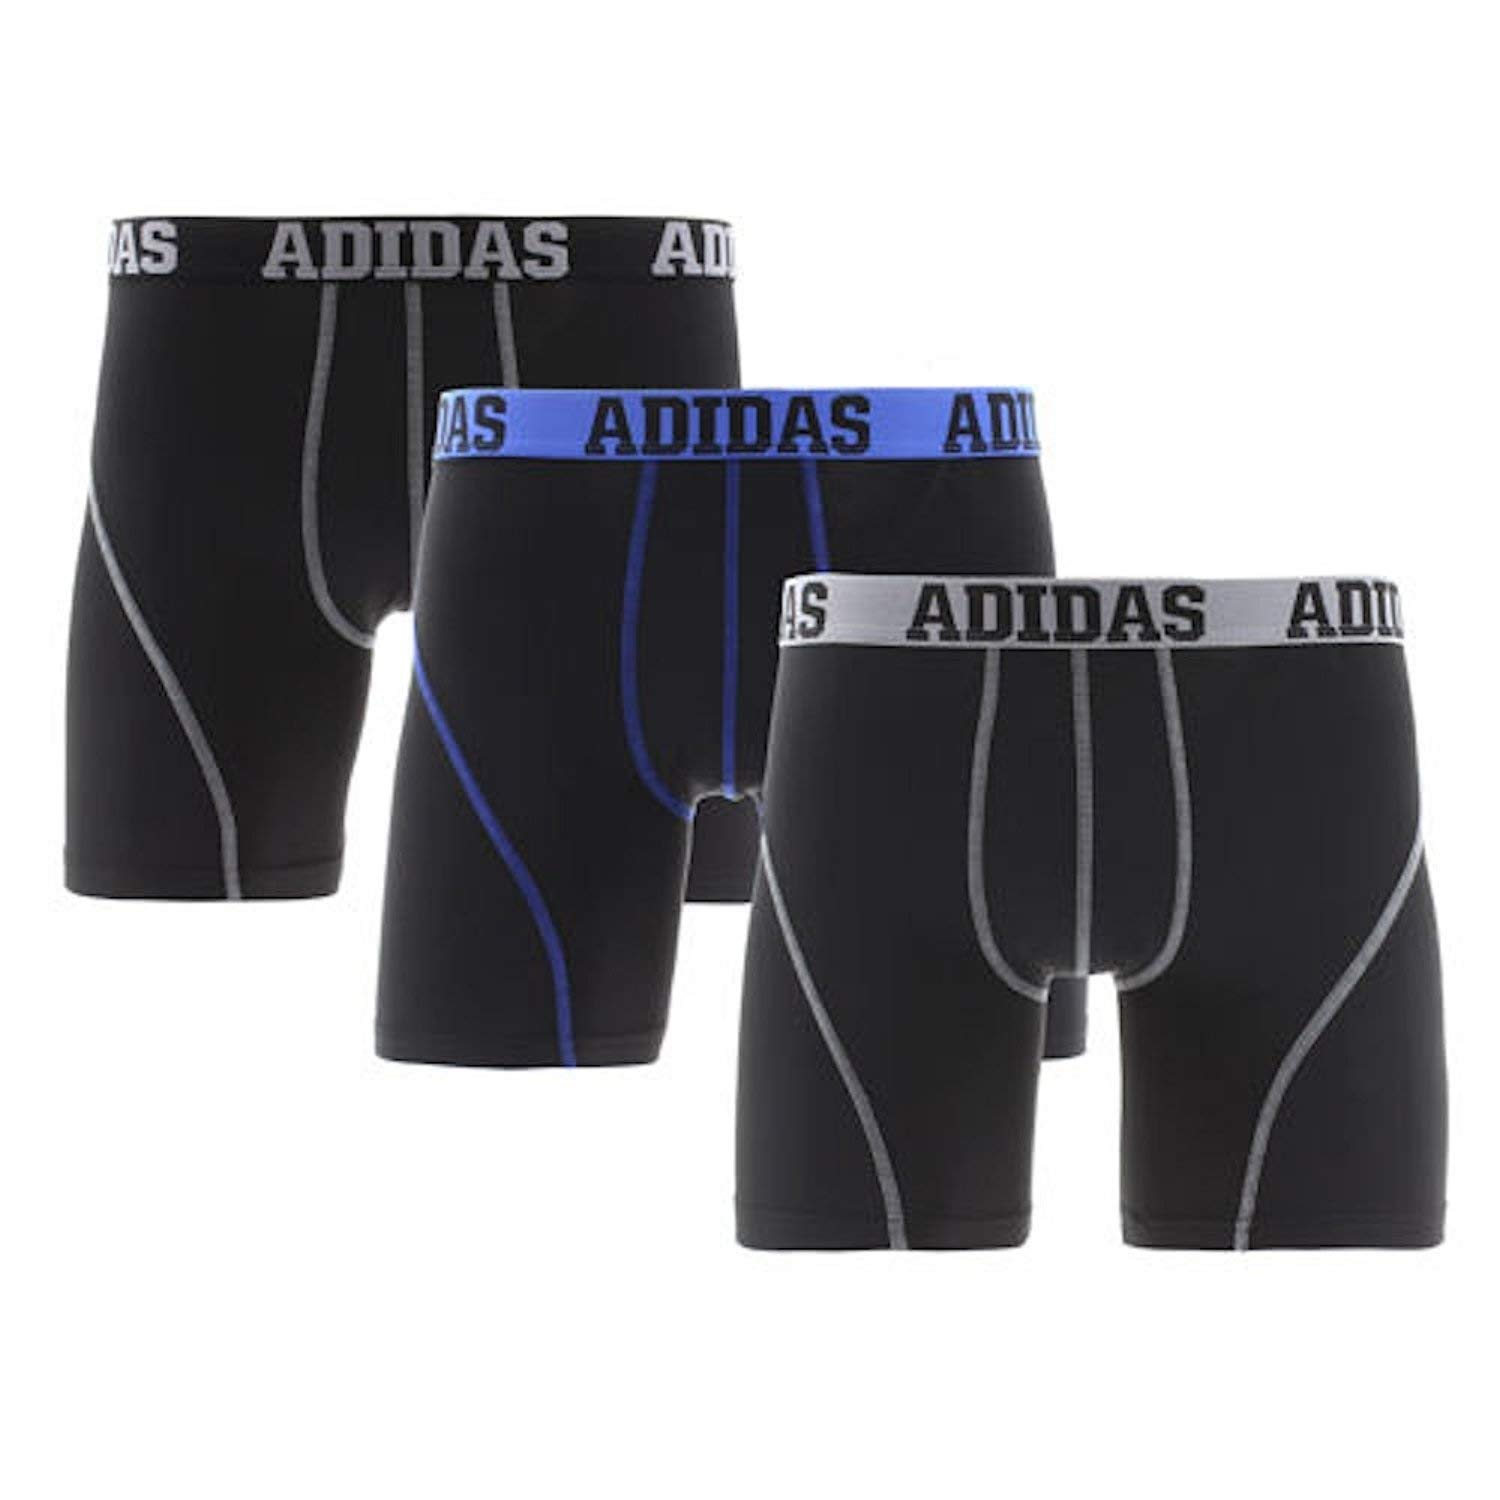 Adidas Men's Climalite Performance Boxer Brief Underwear (3-Pack)